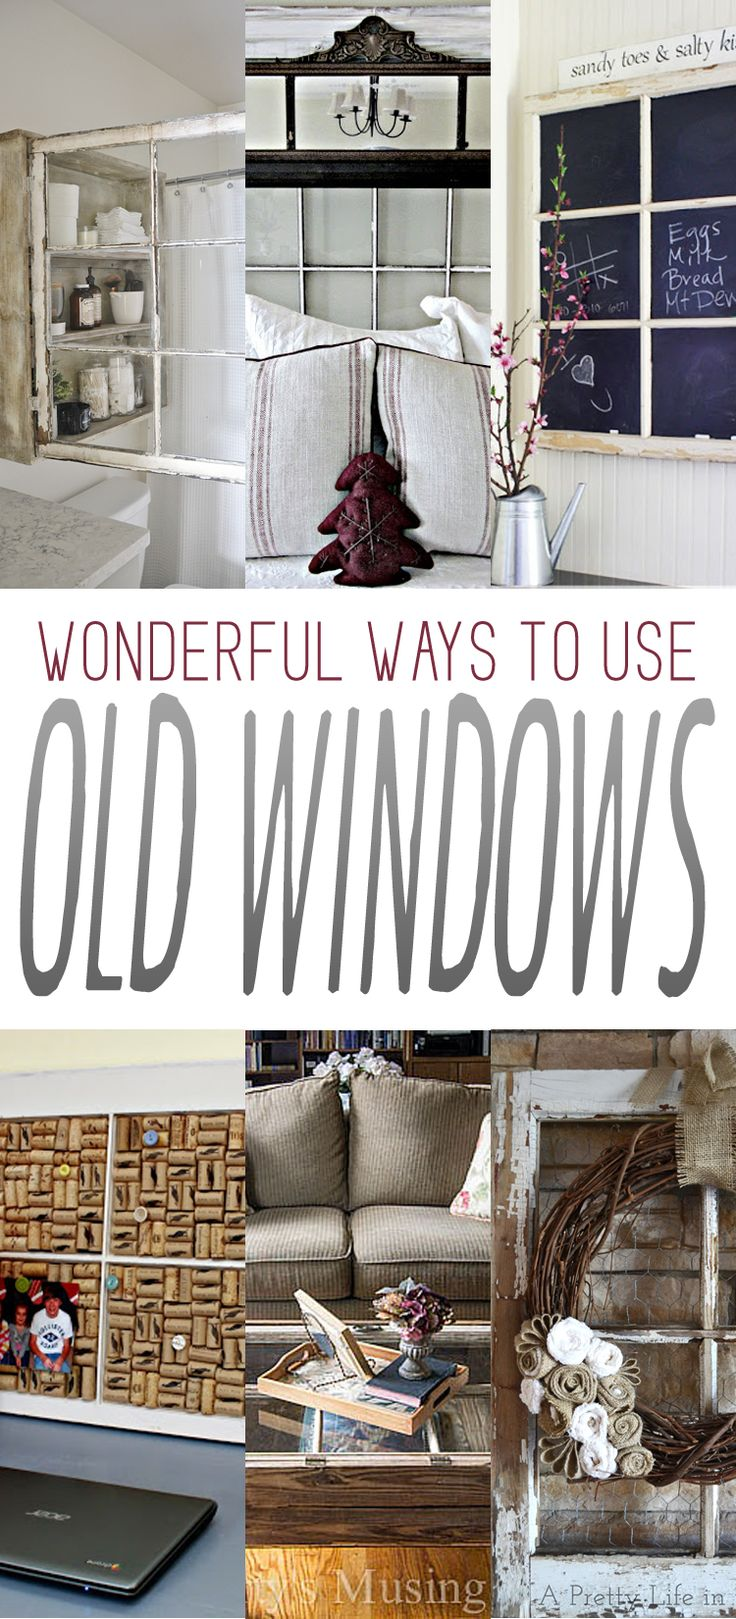 Wonderful Ways to Use Old Windows - The Cottage Market